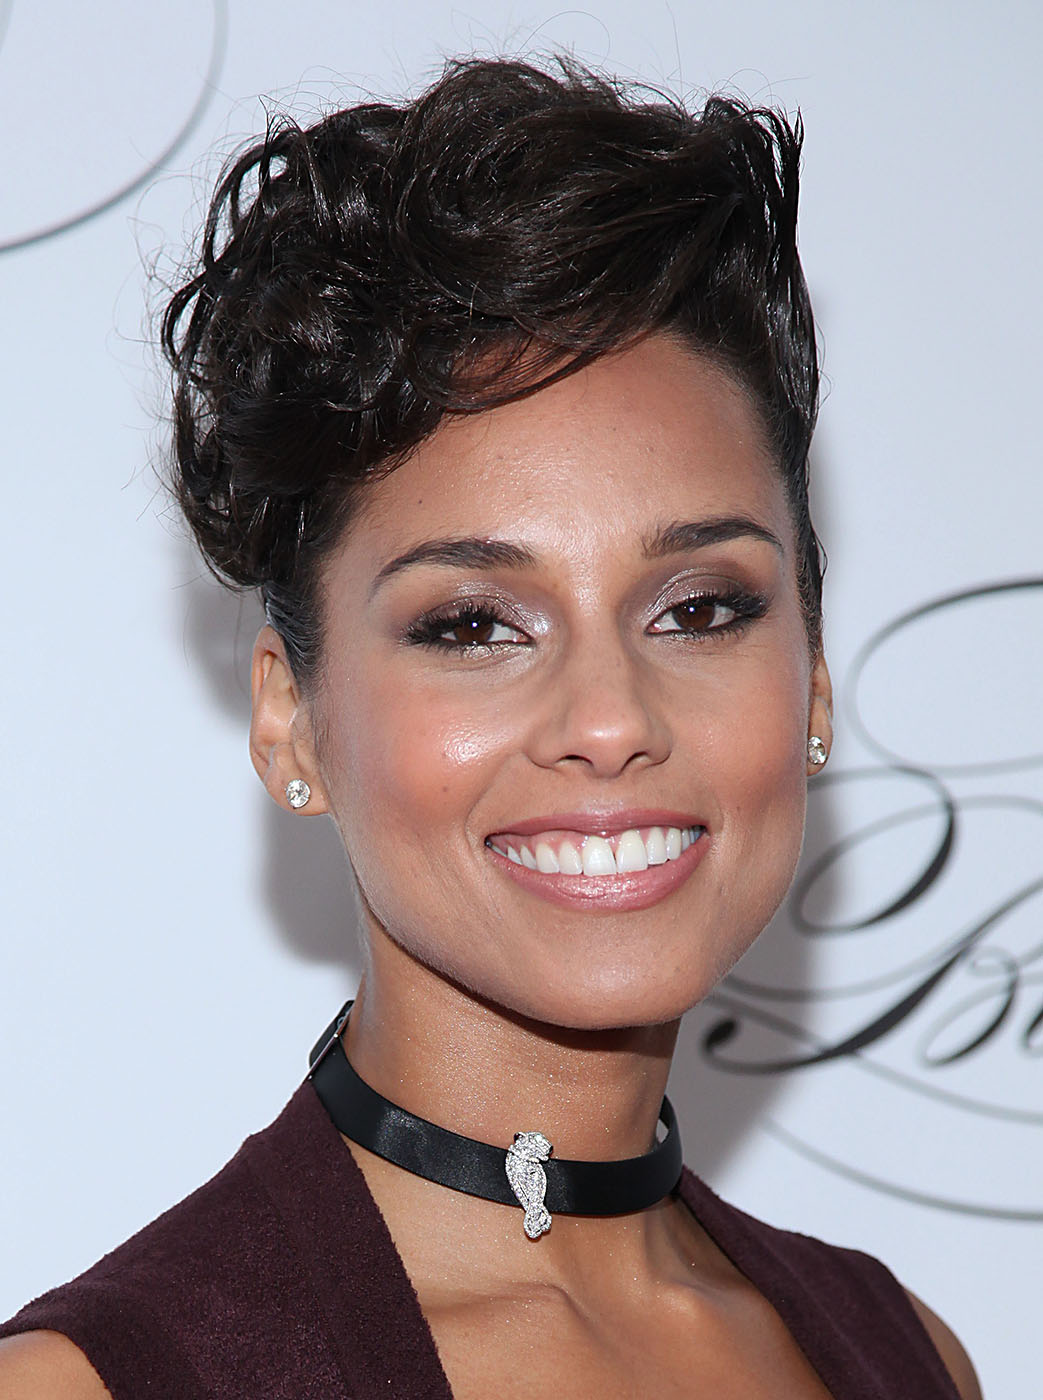 alicia-keys-bad-skin-02-1363295461.jpg